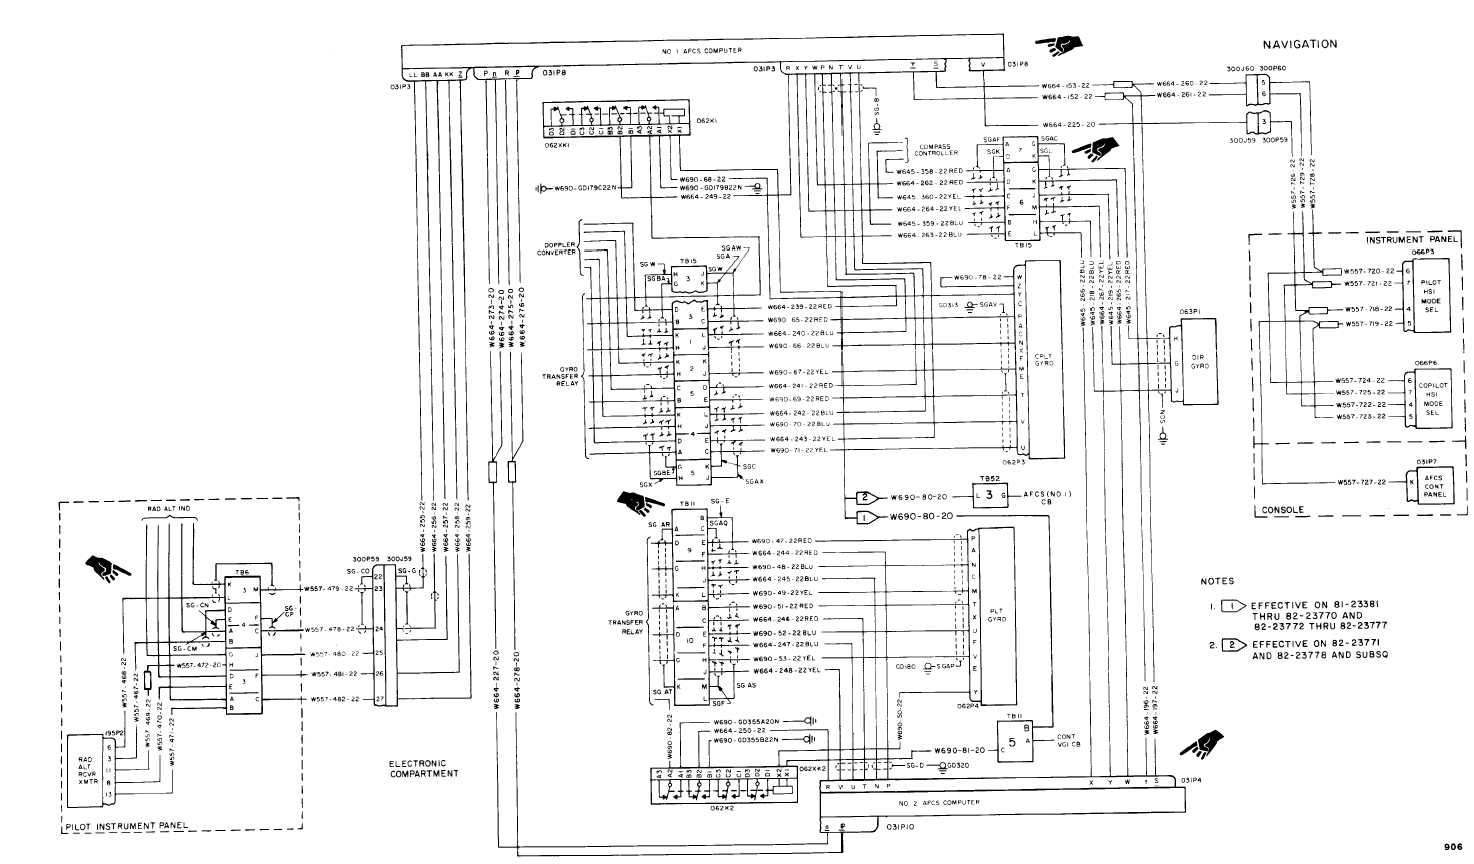 afcs wiring diagram continued tm 55 1520 240 t 3 309. Black Bedroom Furniture Sets. Home Design Ideas